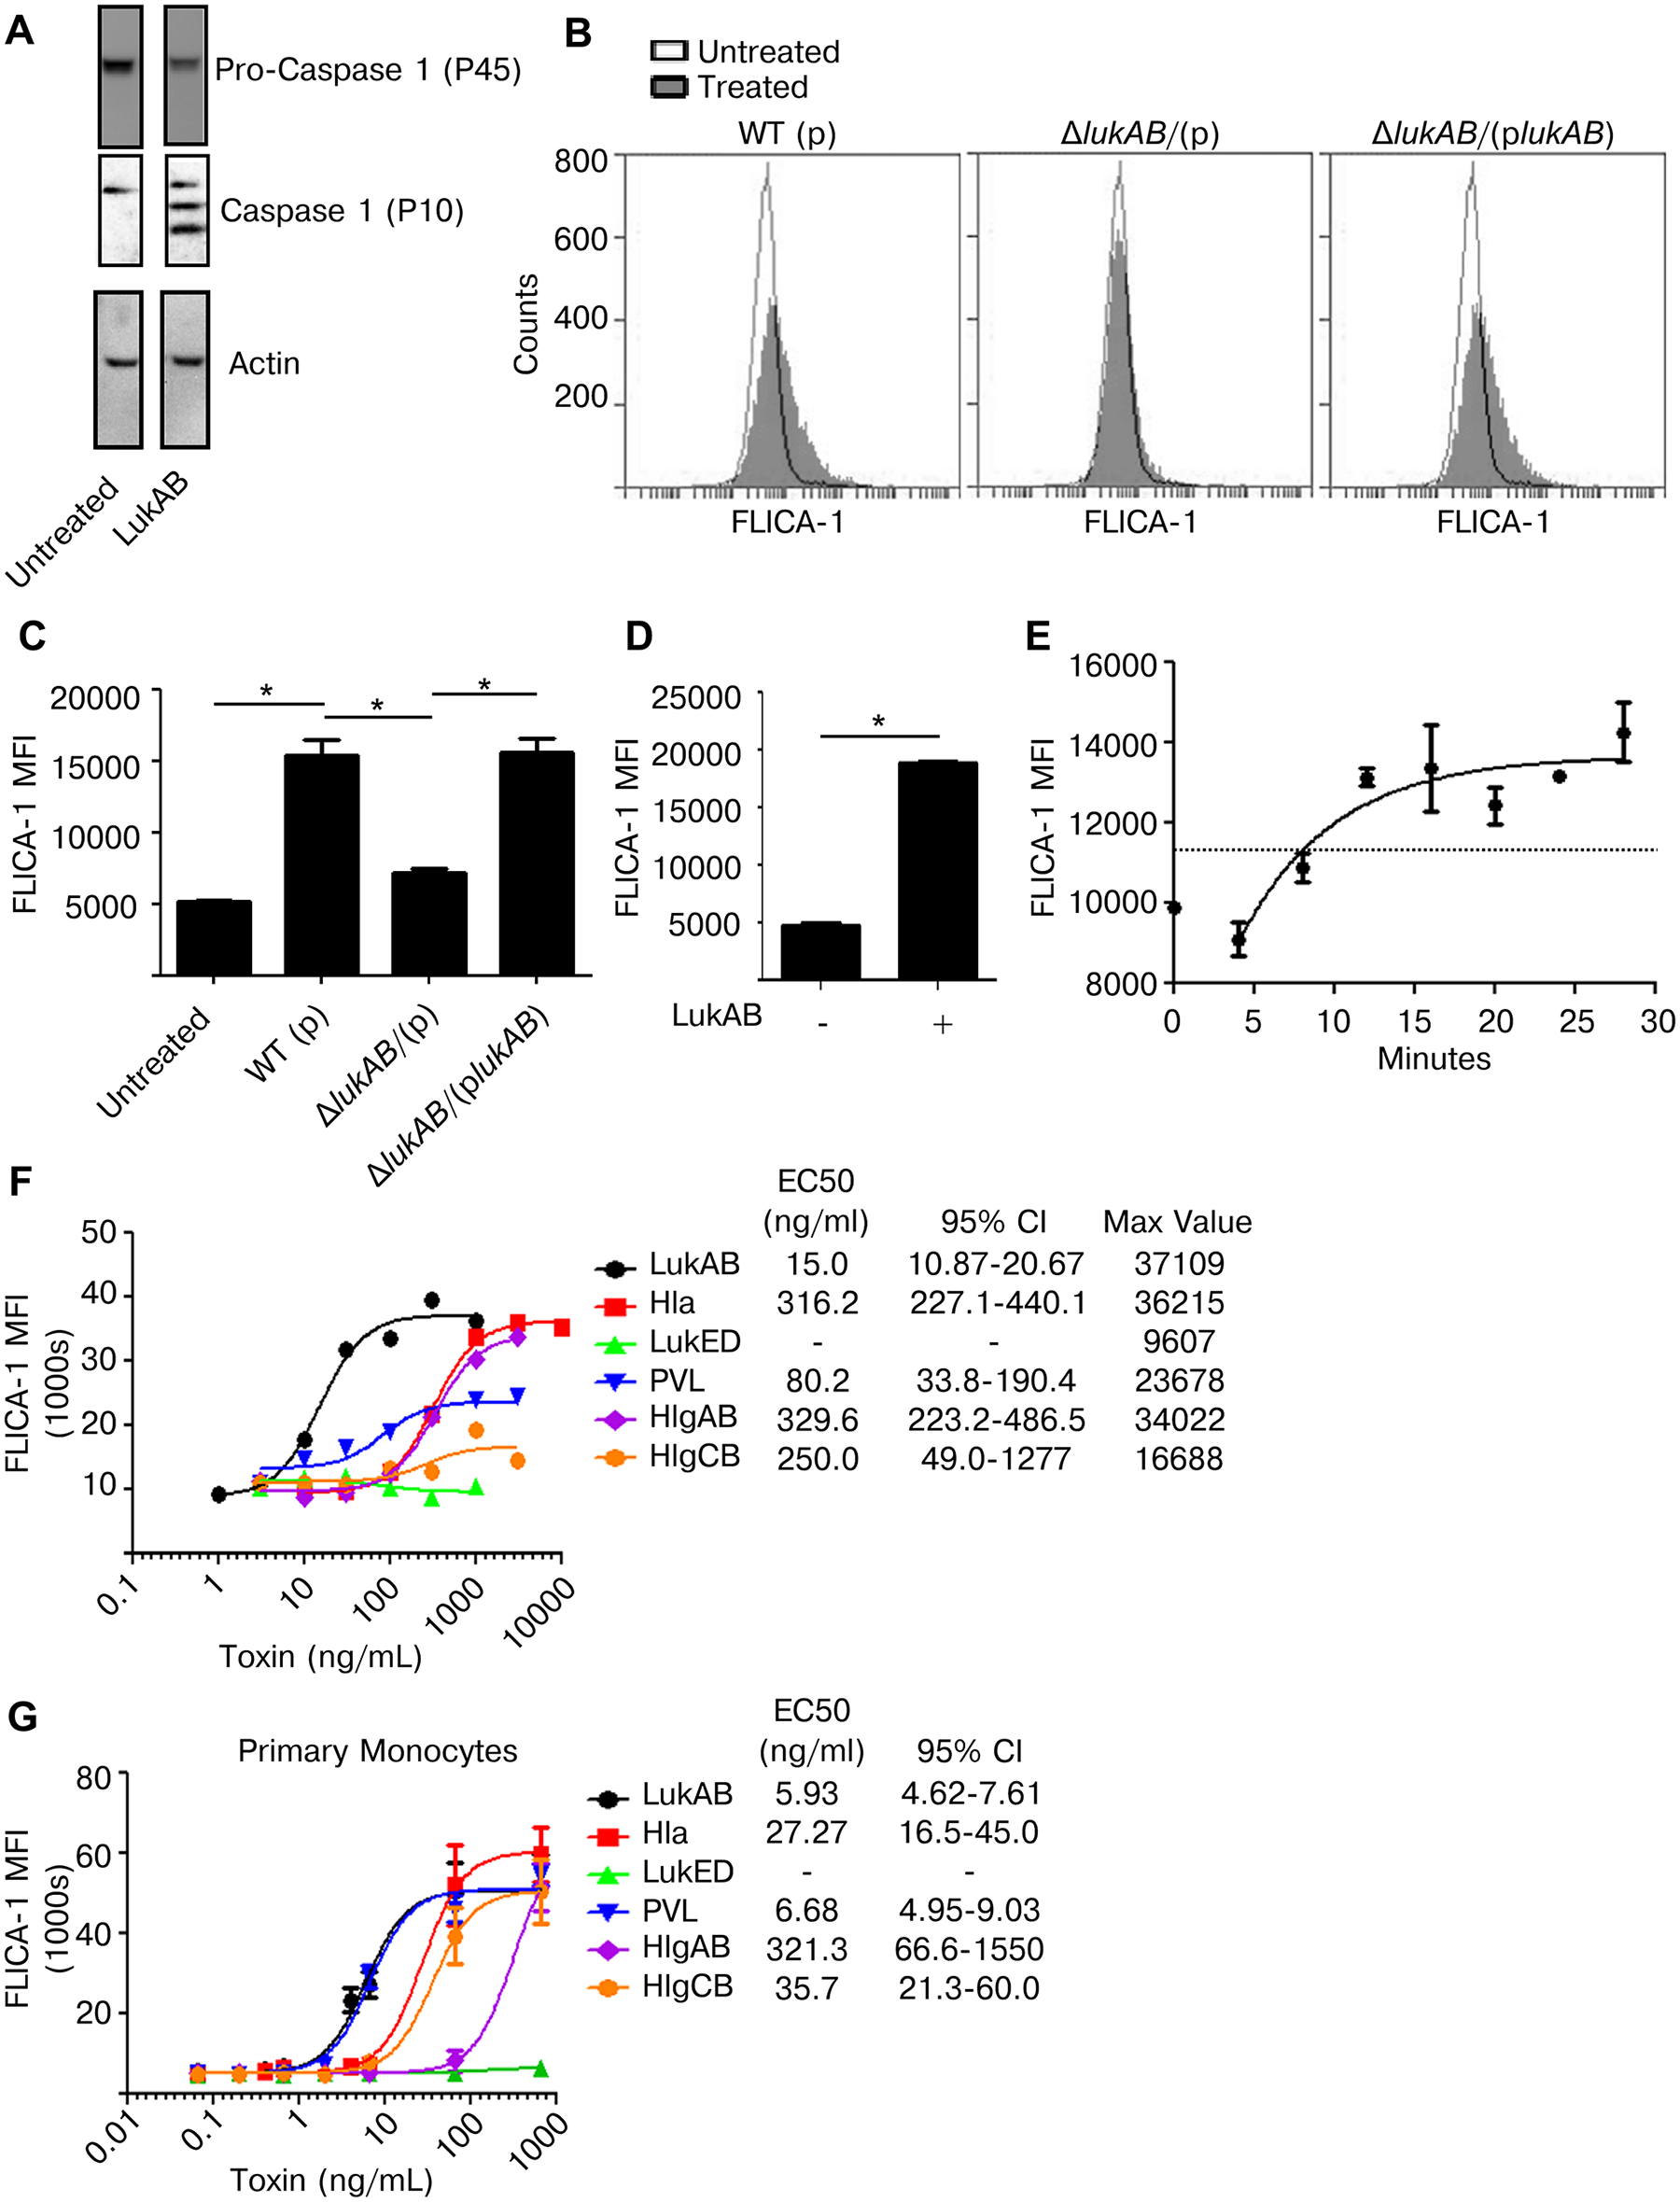 LukAB is a potent activator of Caspase 1.